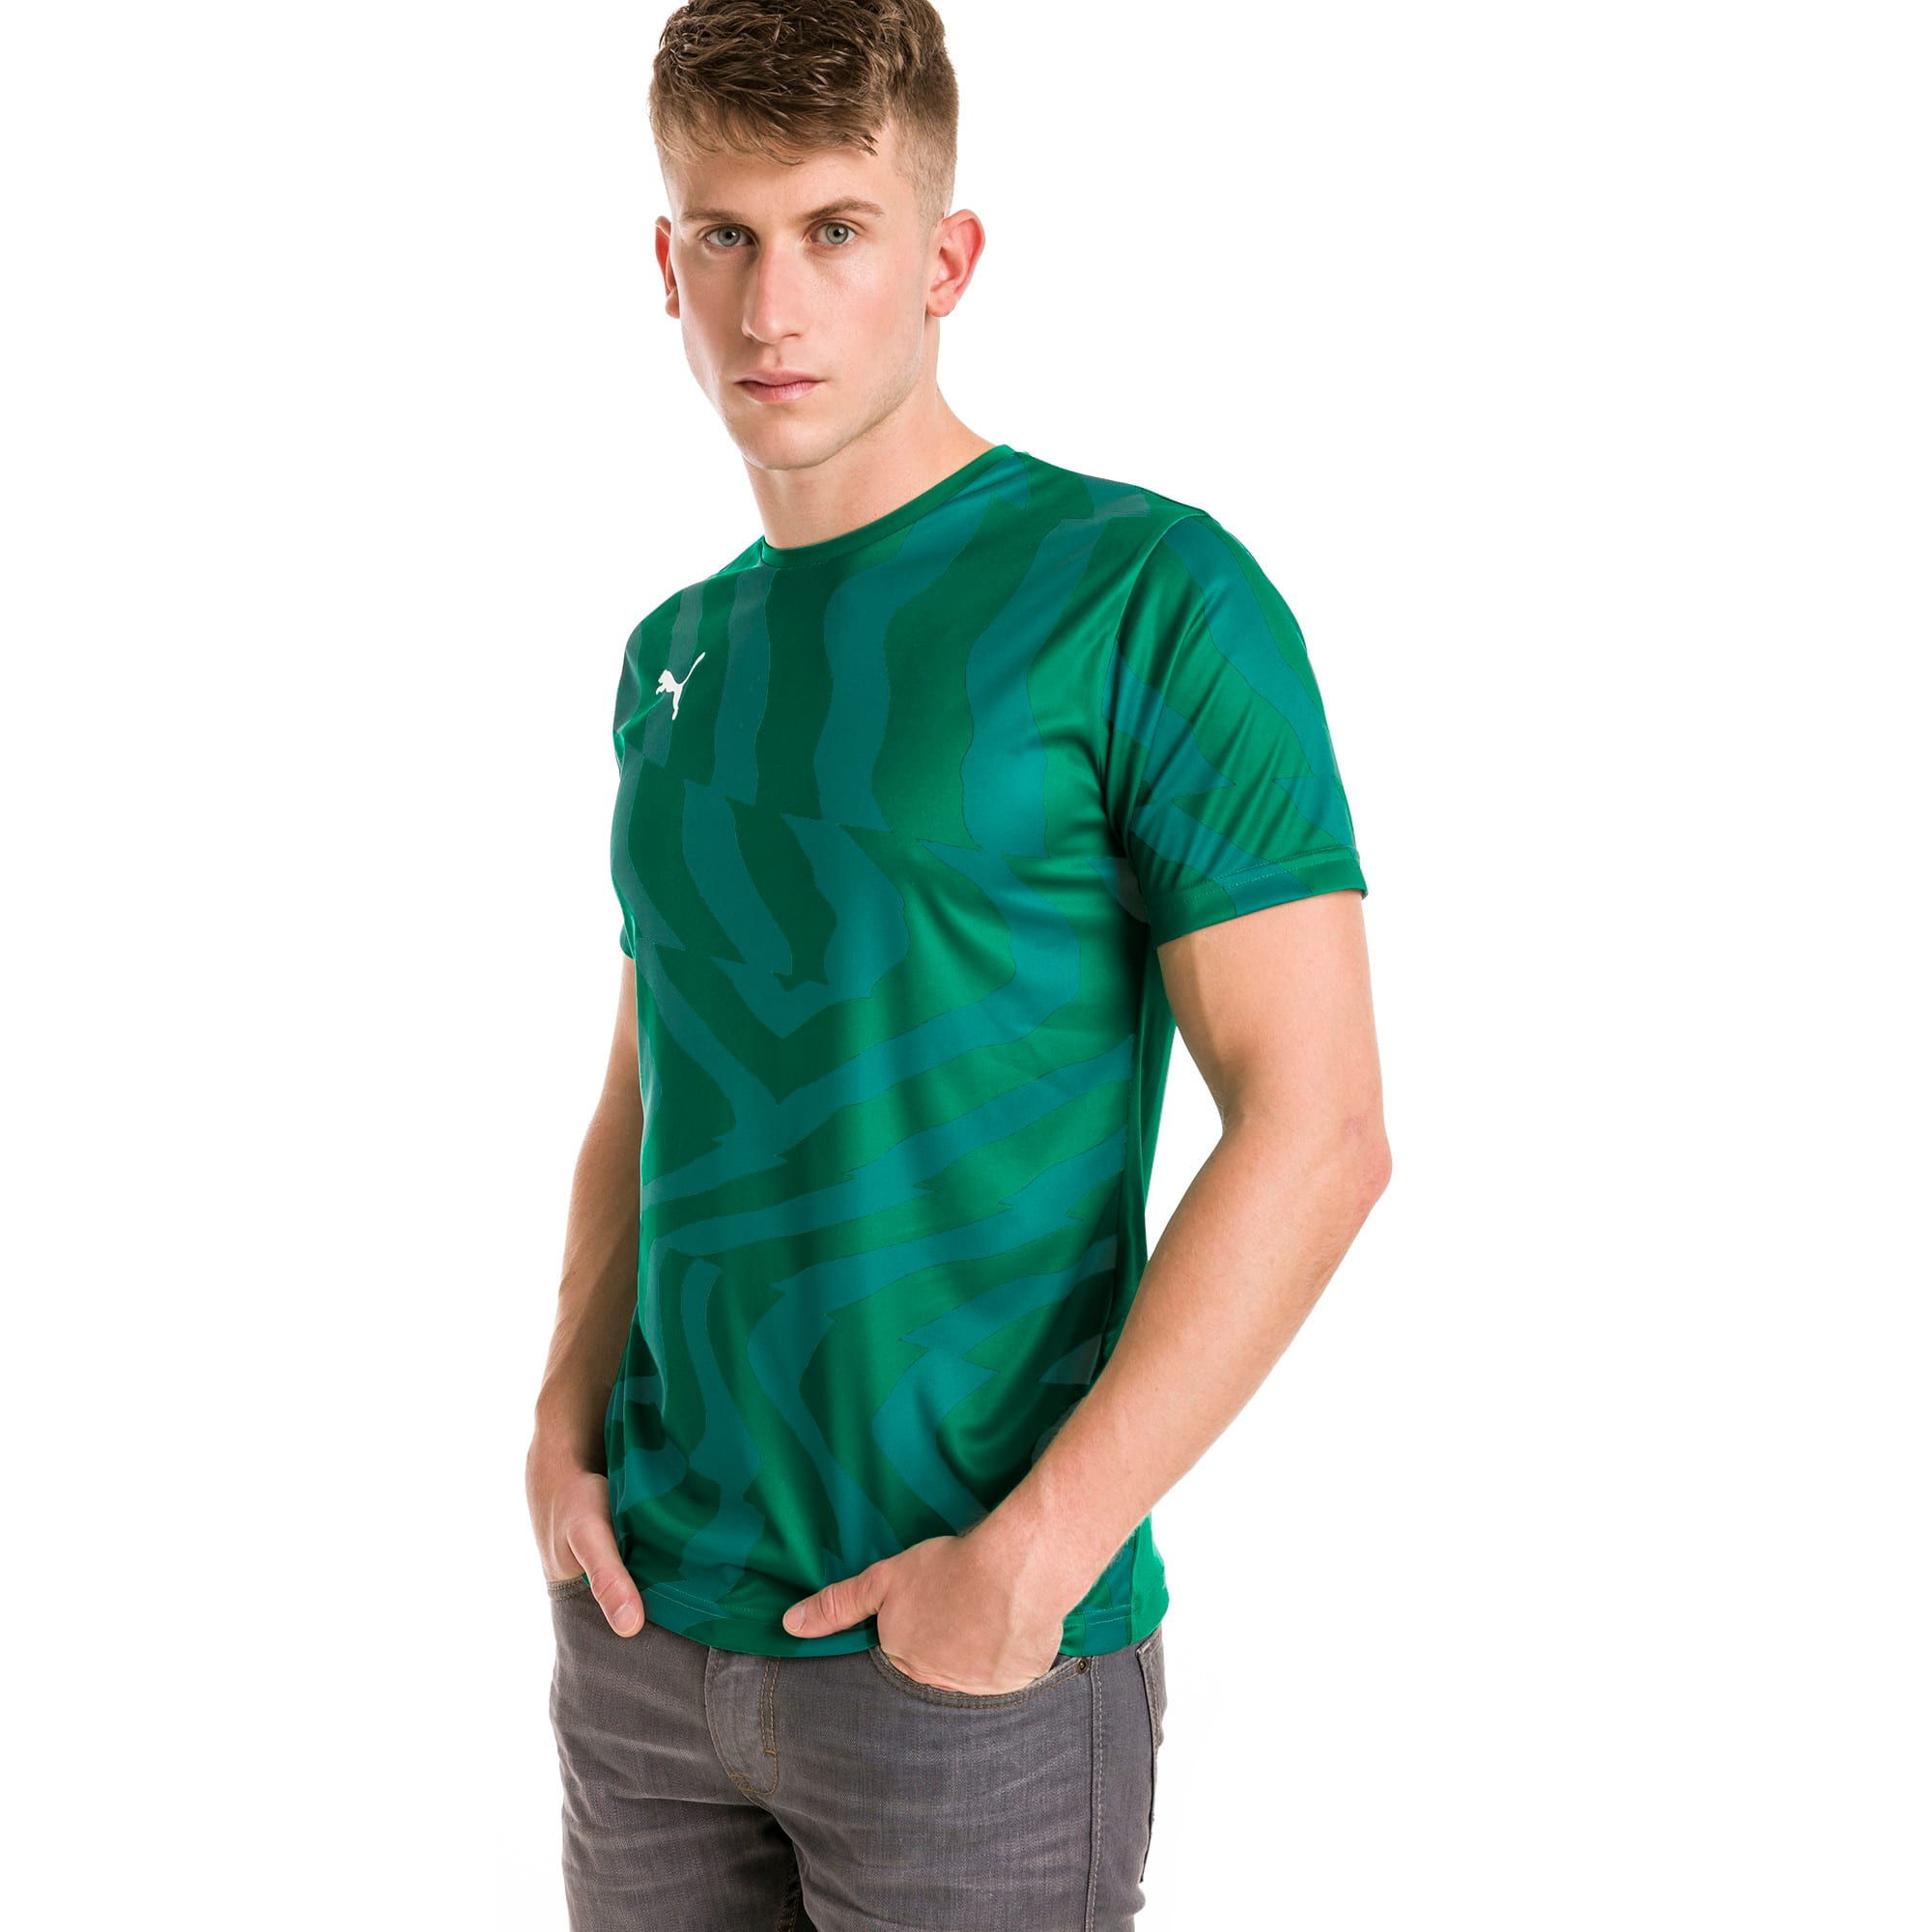 CUP Core Men's Football Jersey, Pepper Green-Puma White, large